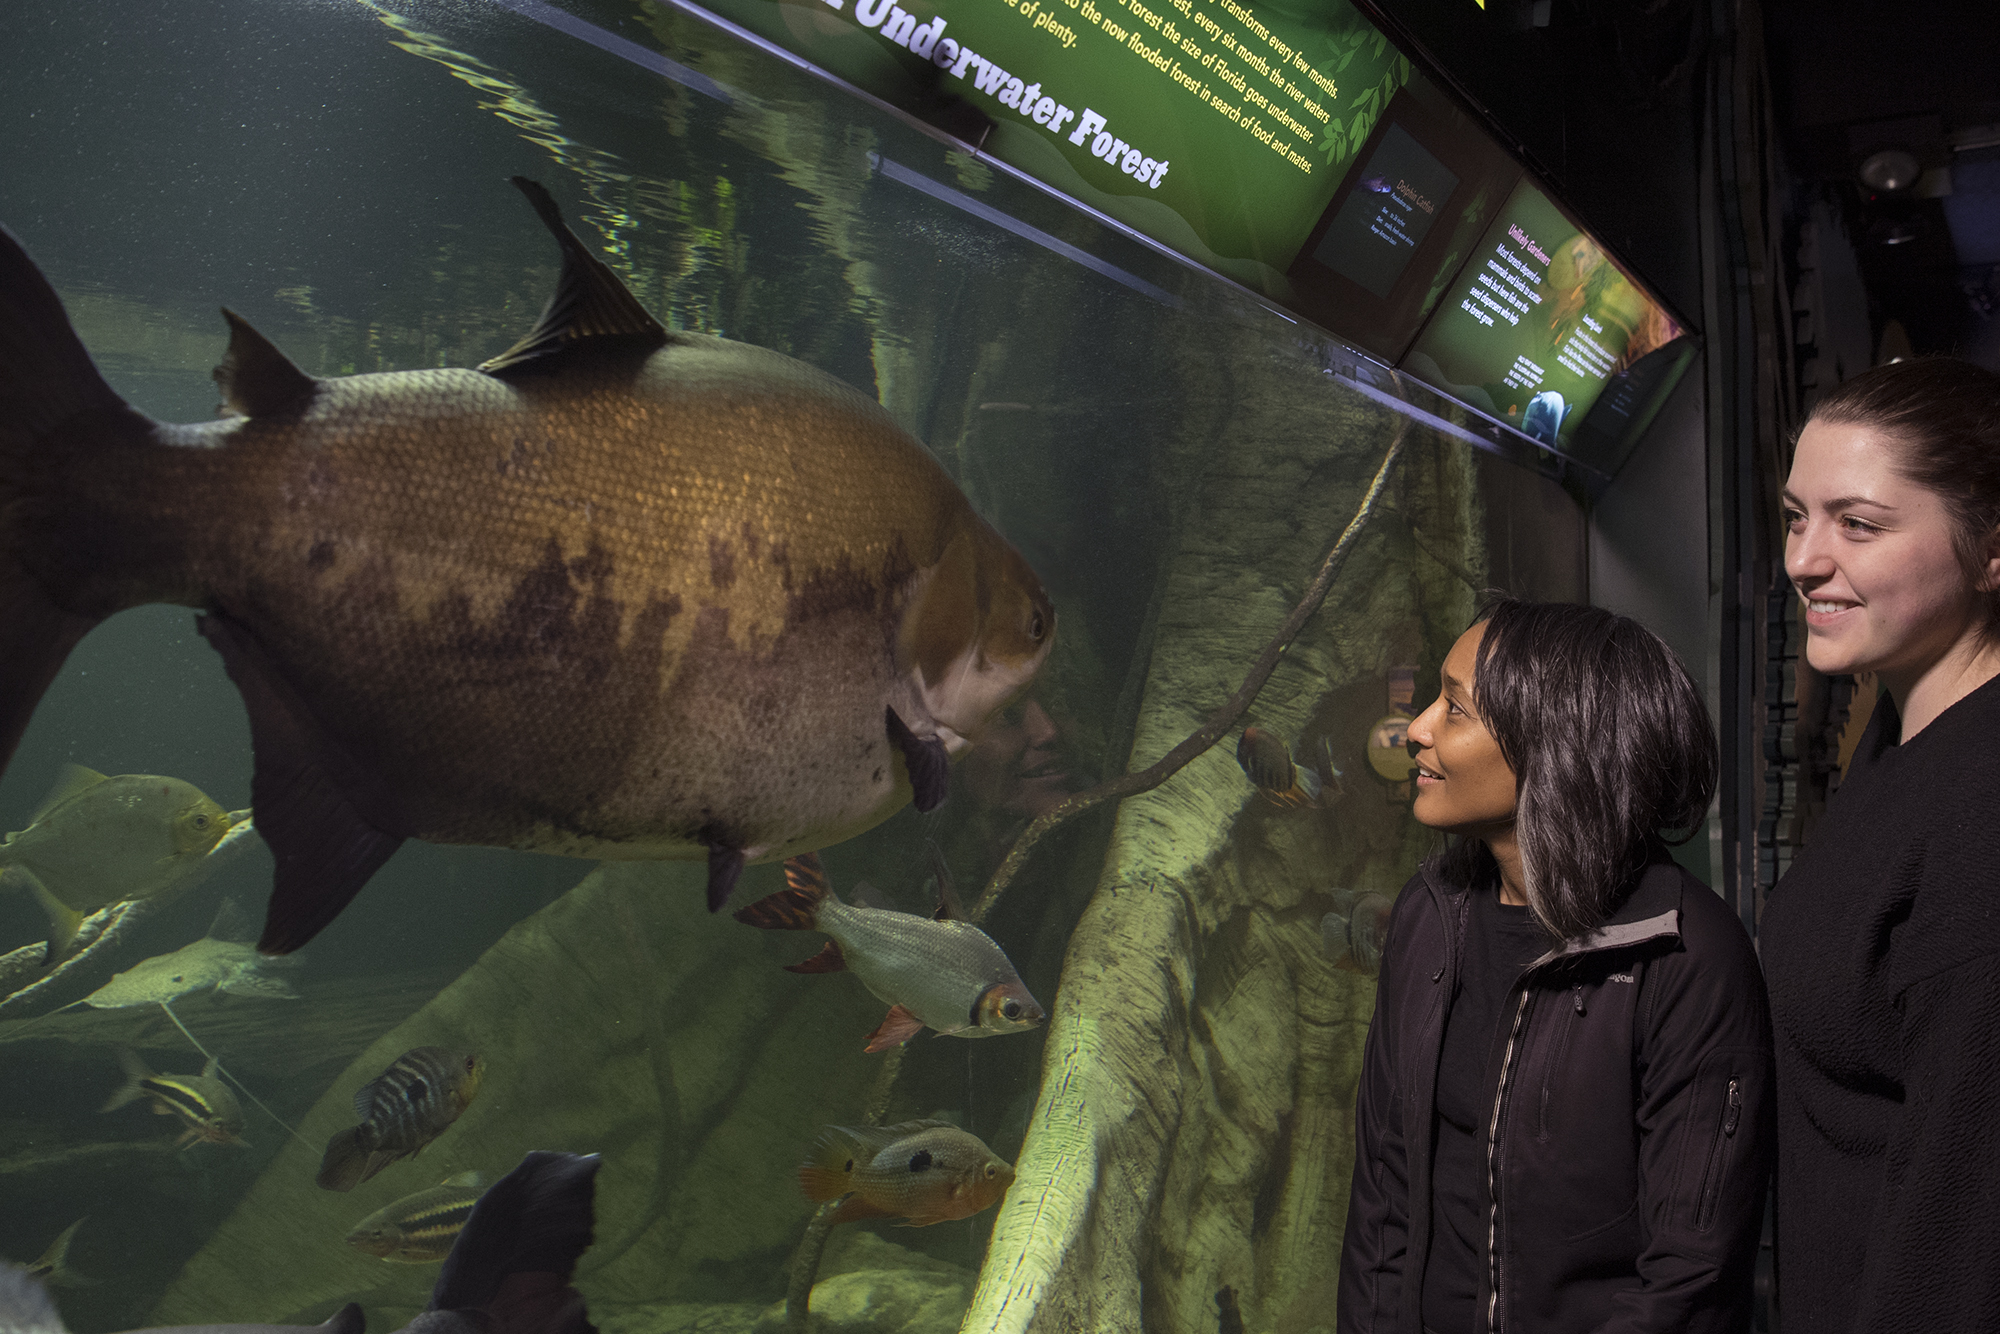 Two guests look at a large fish through aquarium glass.